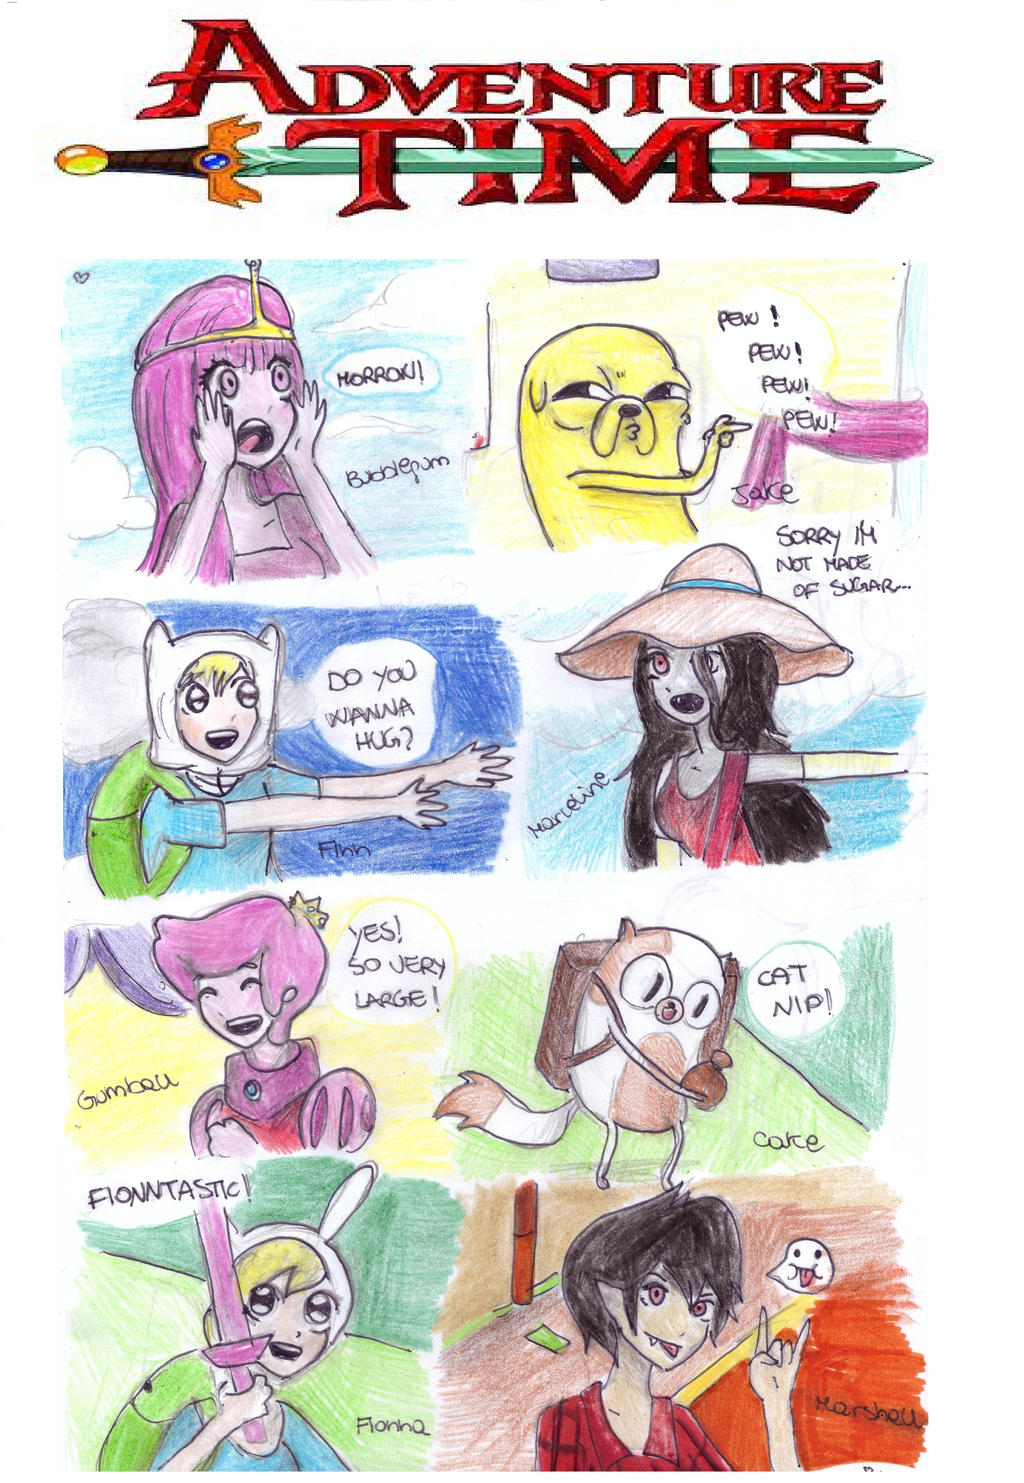 adventure time characters anime style by NENEBUBBLEELOVER ...